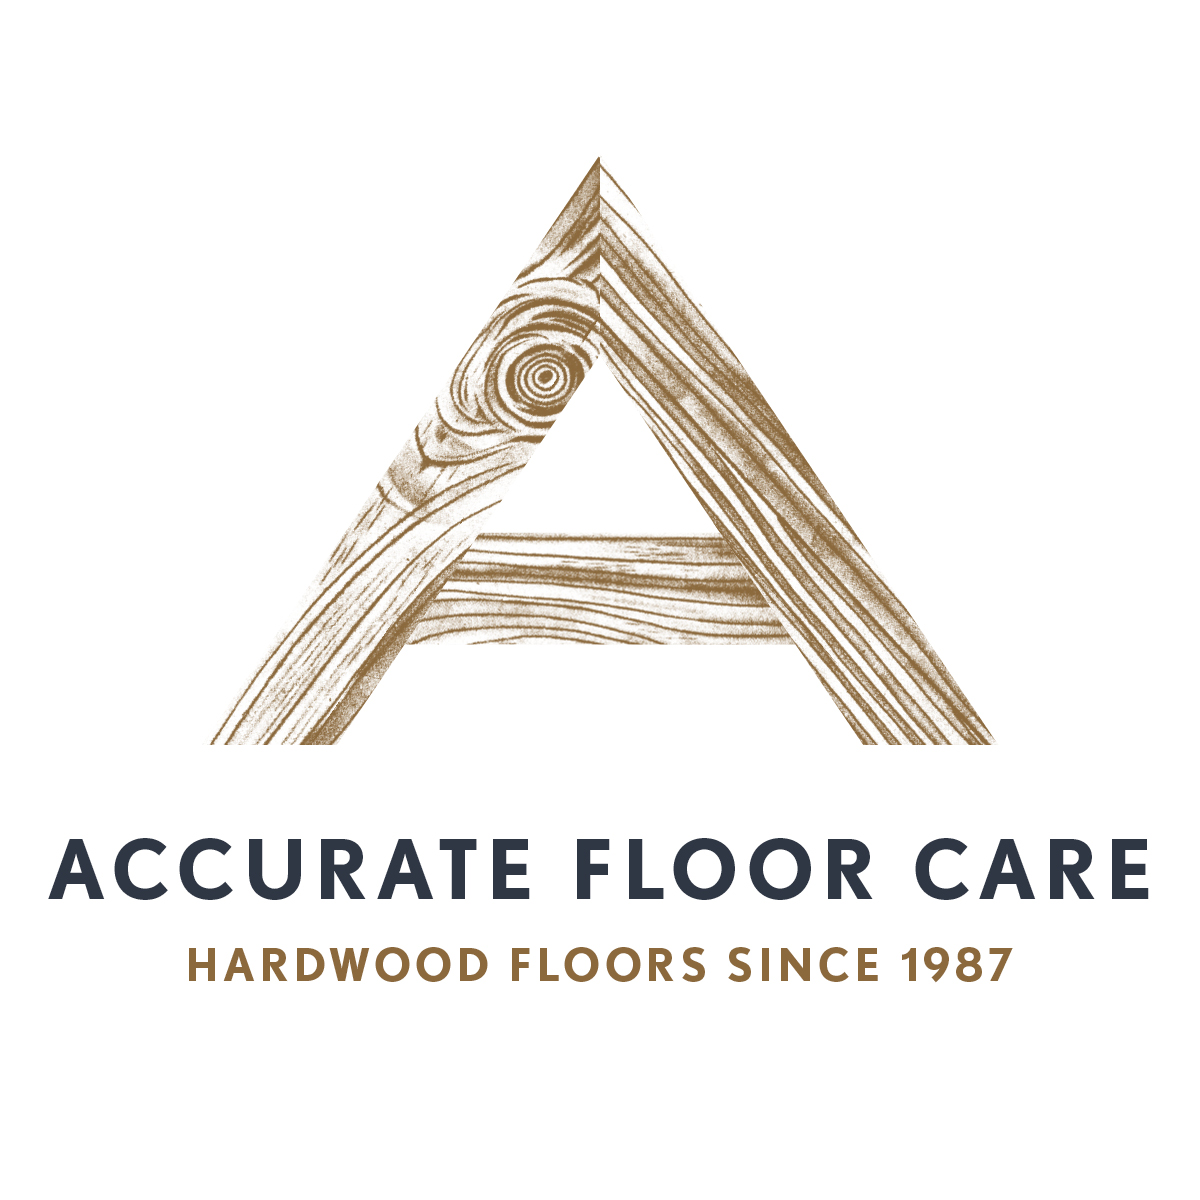 Accurate Floor Care